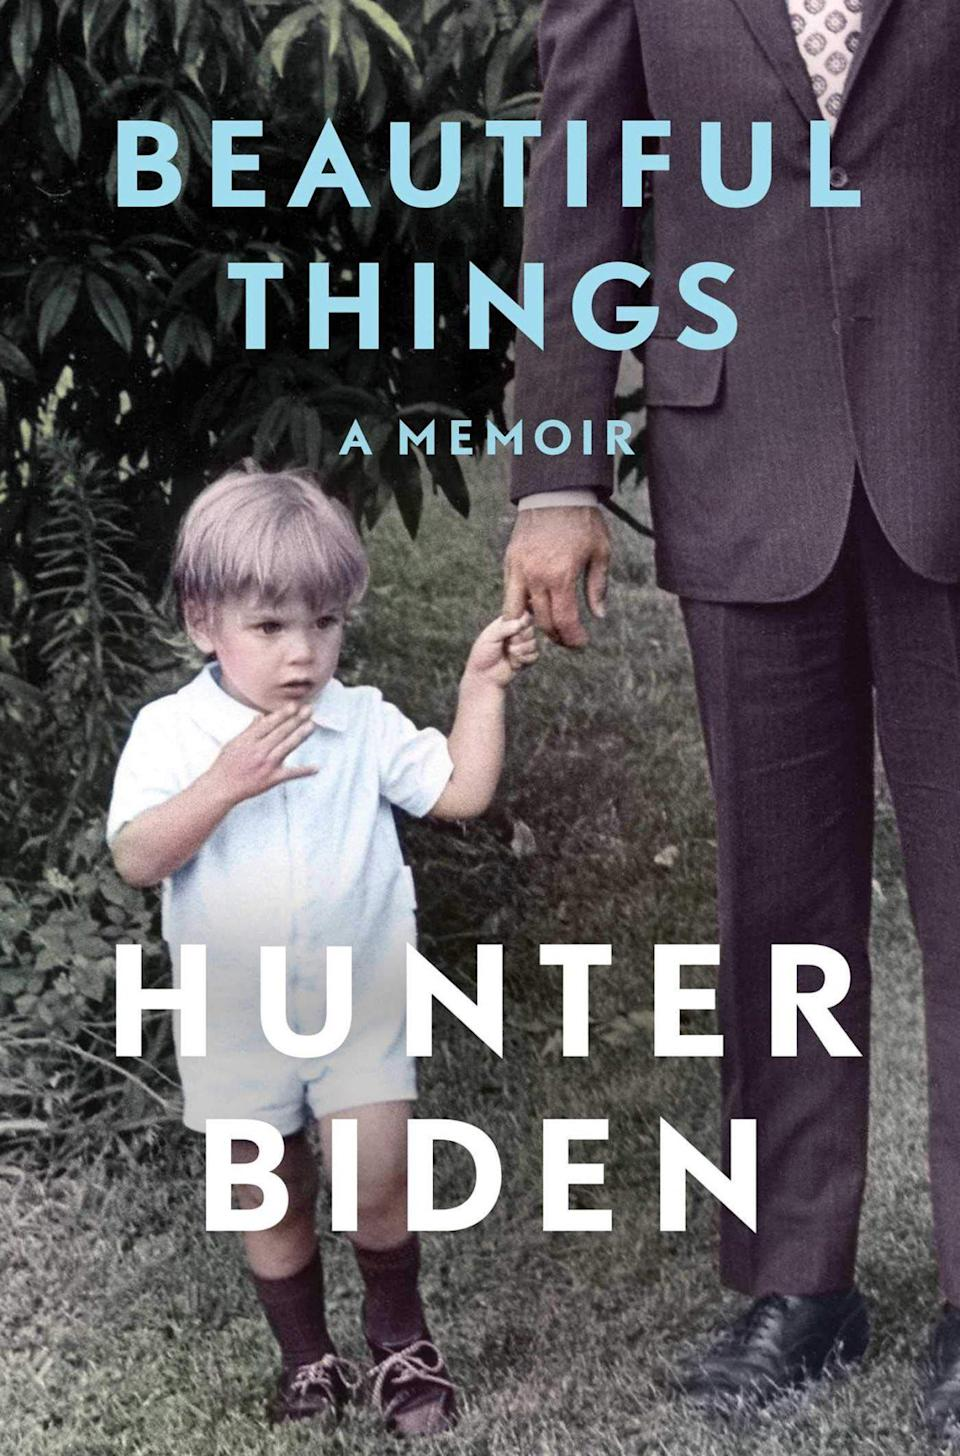 <p>Widely reported moments — the deadly childhood car accident, the loss of older brother Beau, and his descent into addiction — become even more crushing when told in Hunter Biden's own words for his first memoir, but the equally notable happy ending thankfully offers a reprieve. (April 6)</p>